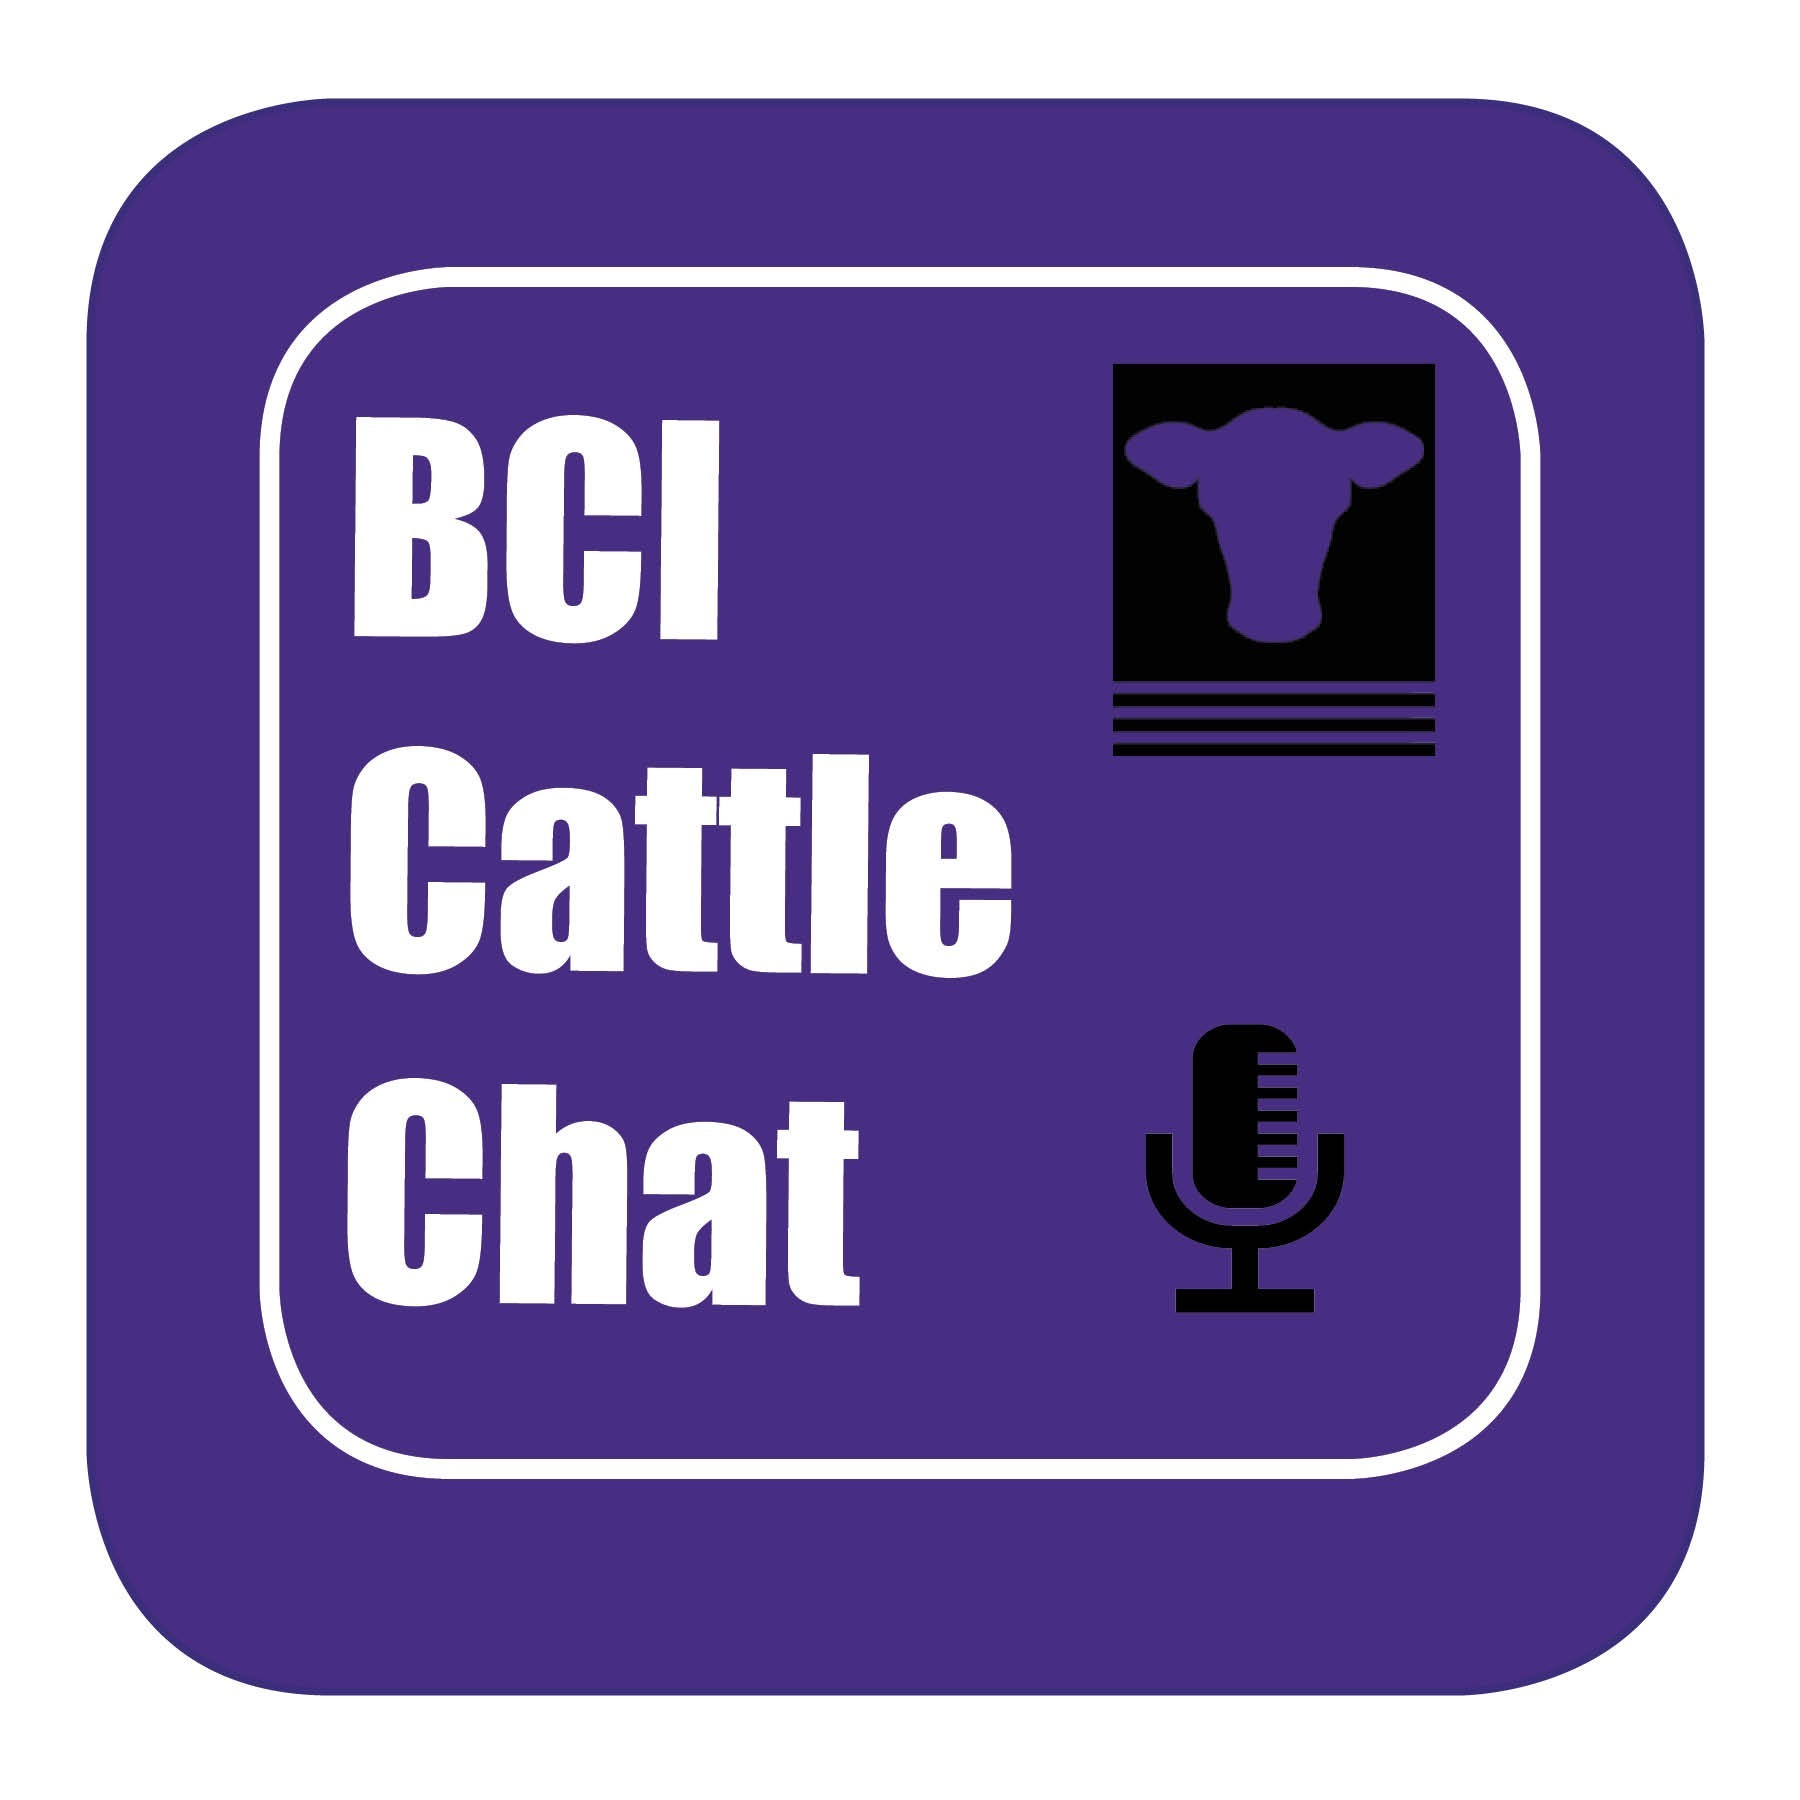 BCI Cattle Chat - Episode 50